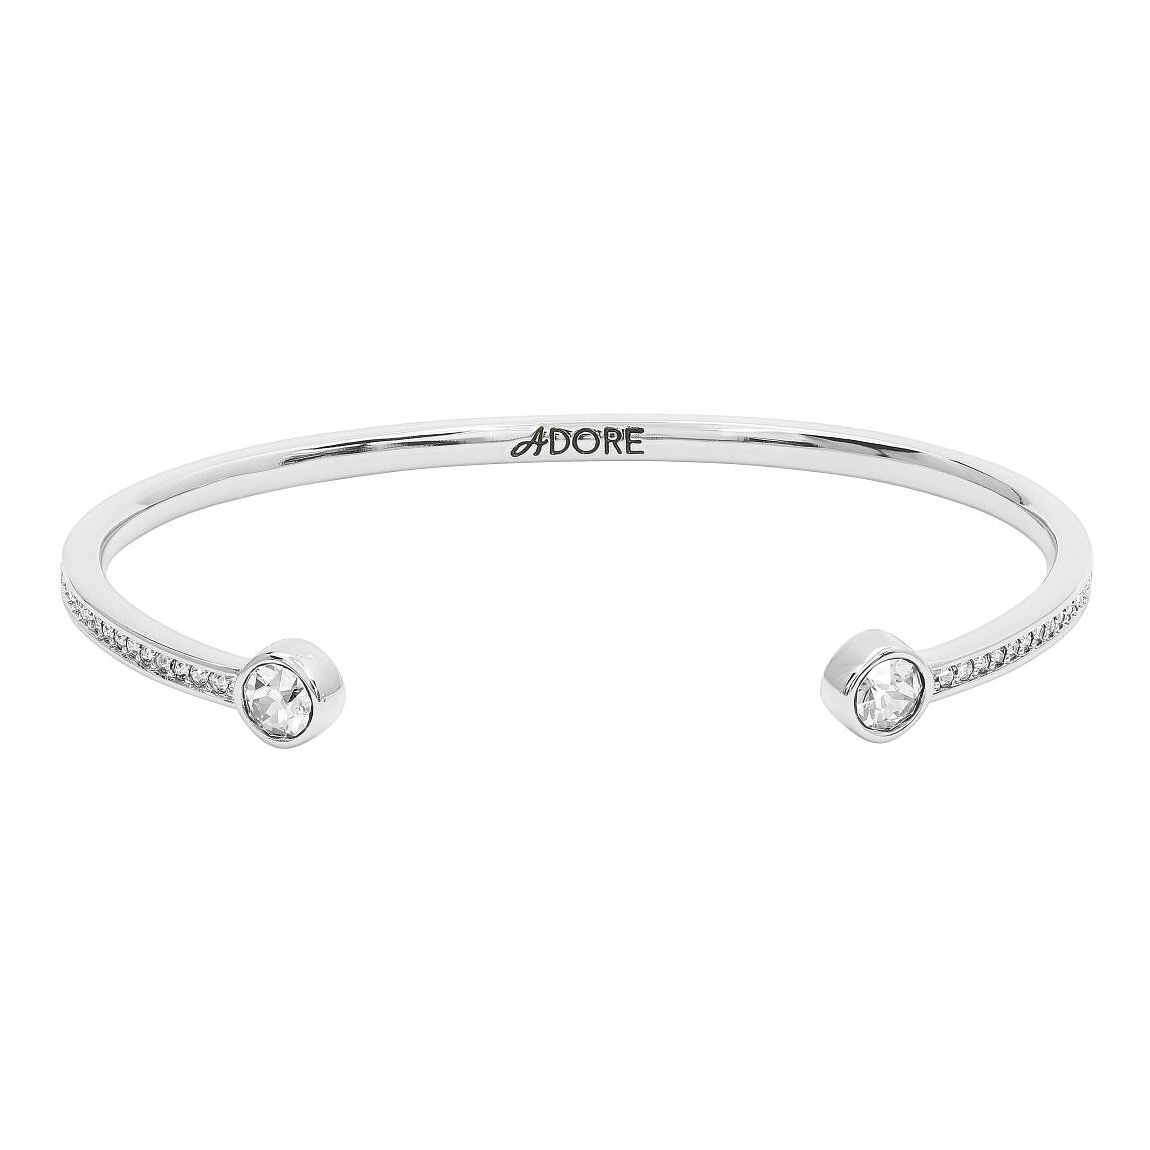 Adore Ladies' Rhodium Plated Skinny Pave Bangle - Product number 8920001